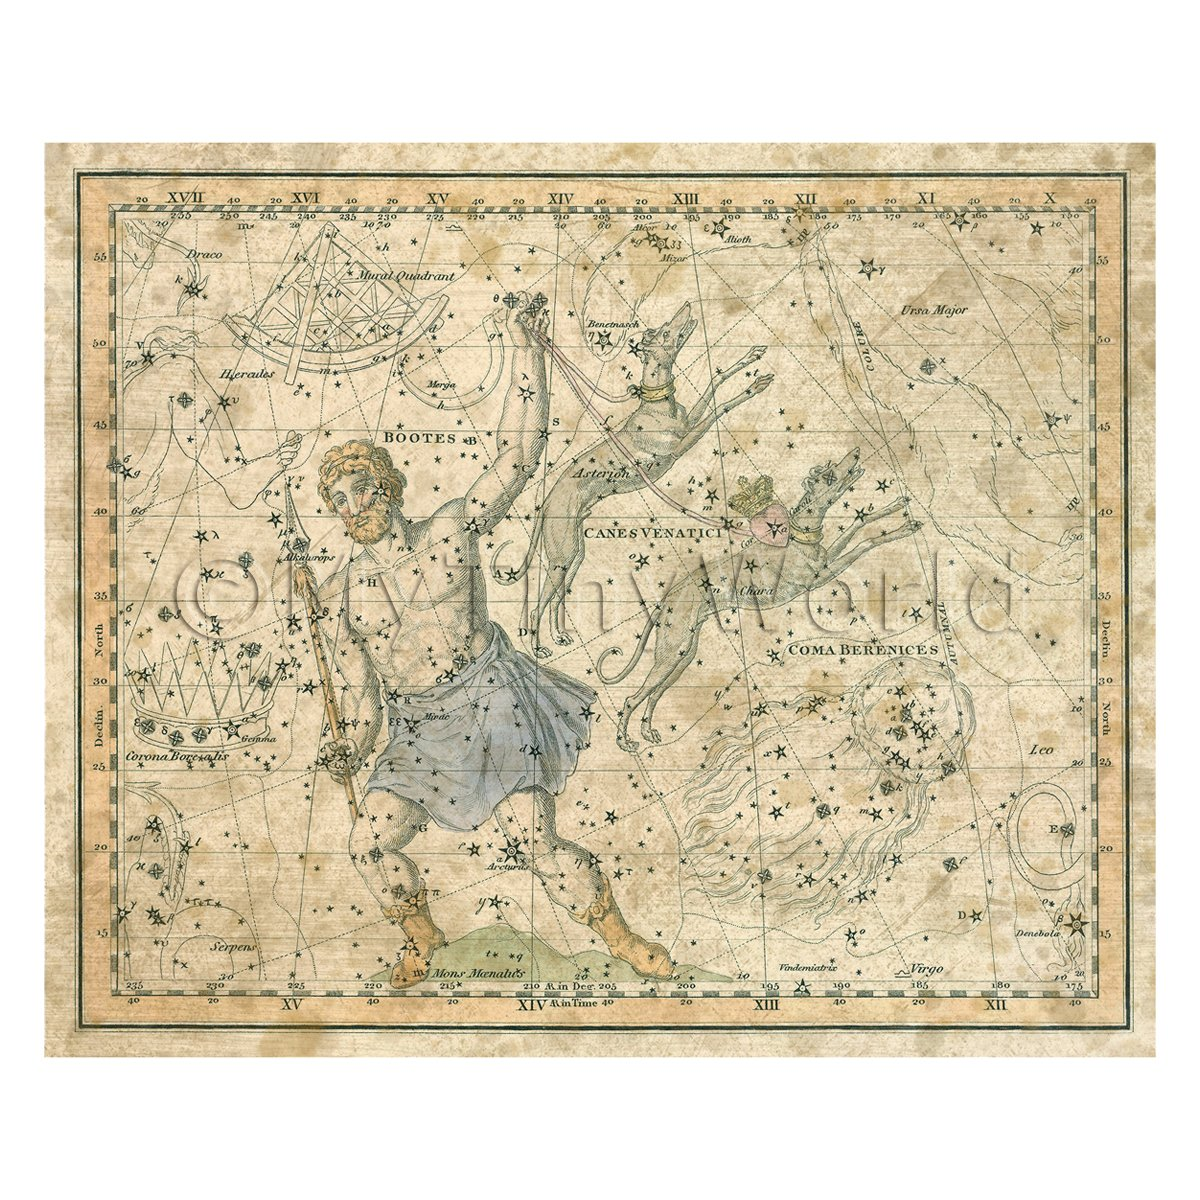 Dolls House Miniature Aged 1800s Star Map With Bootes